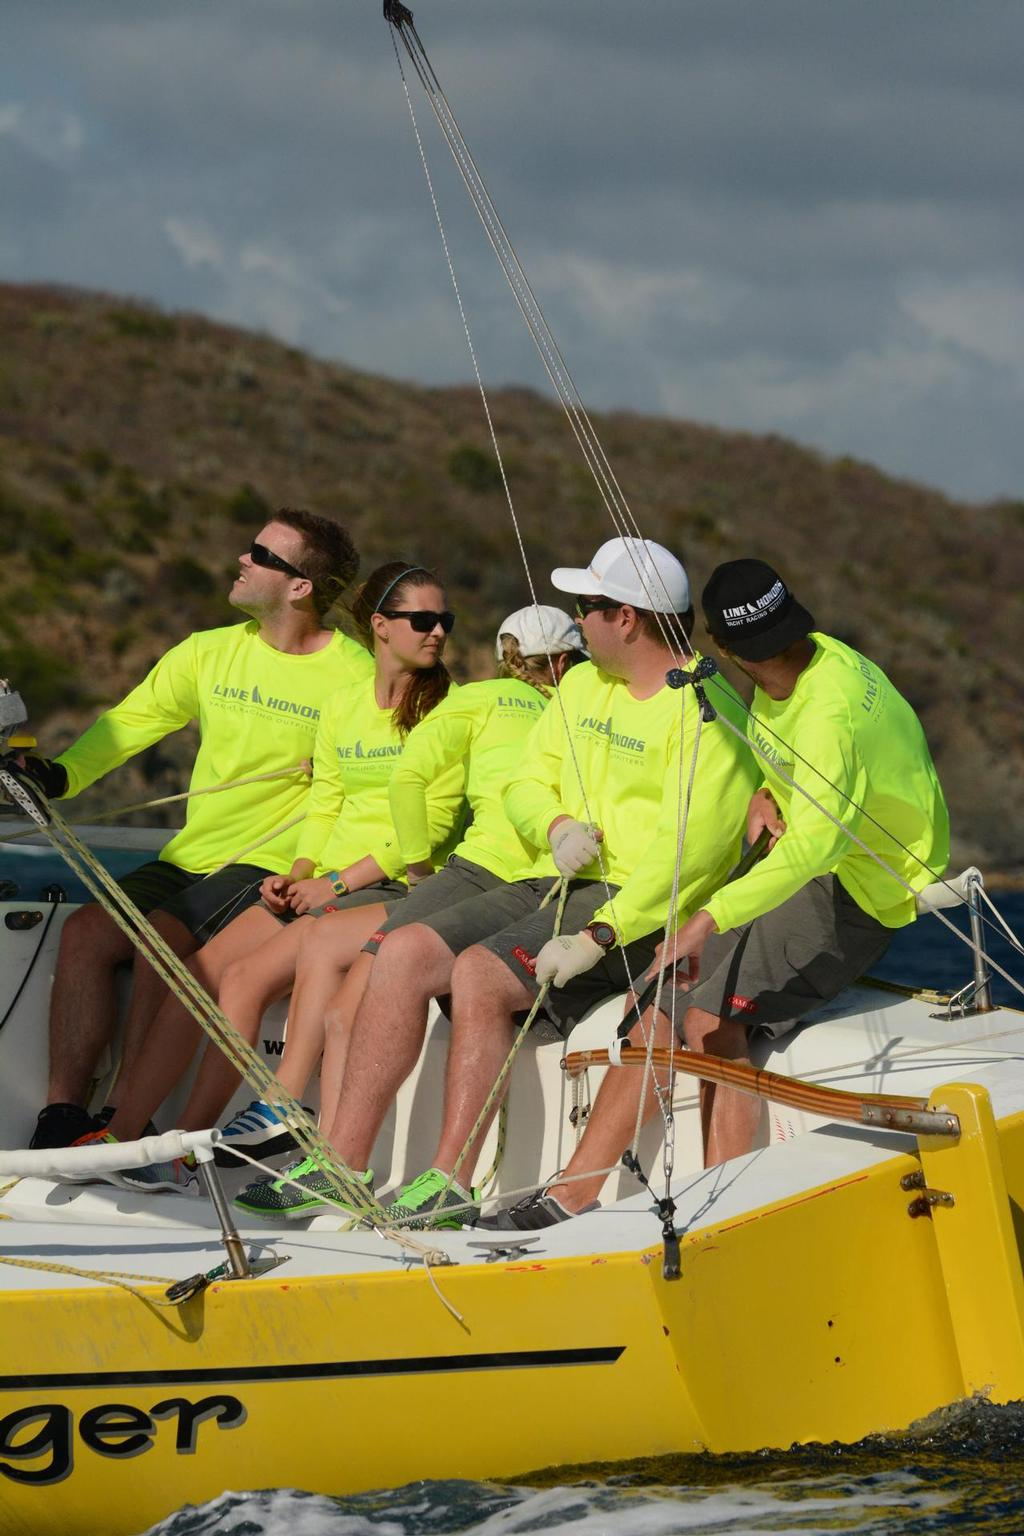 The USVI's Taylor Canfield, currently the top ranked match racer in the world, competes with match racing crew and friends - Day 1 St Thomas Int Regatta  © Dean Barnes